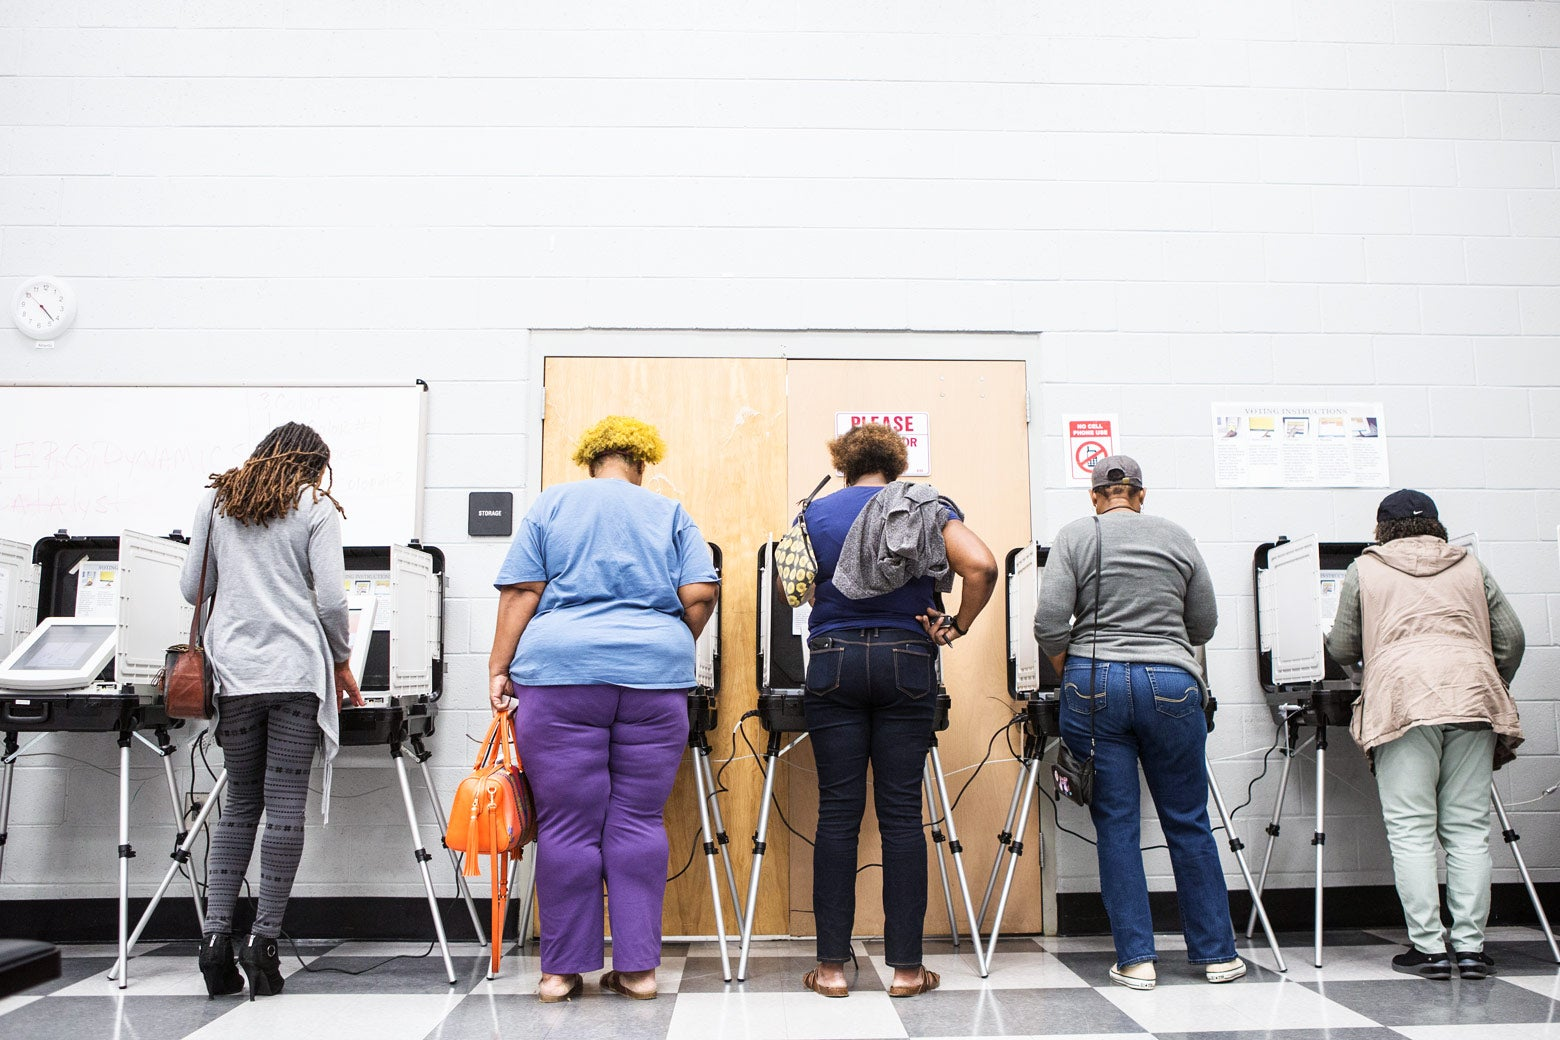 A row of voters at voting machines.